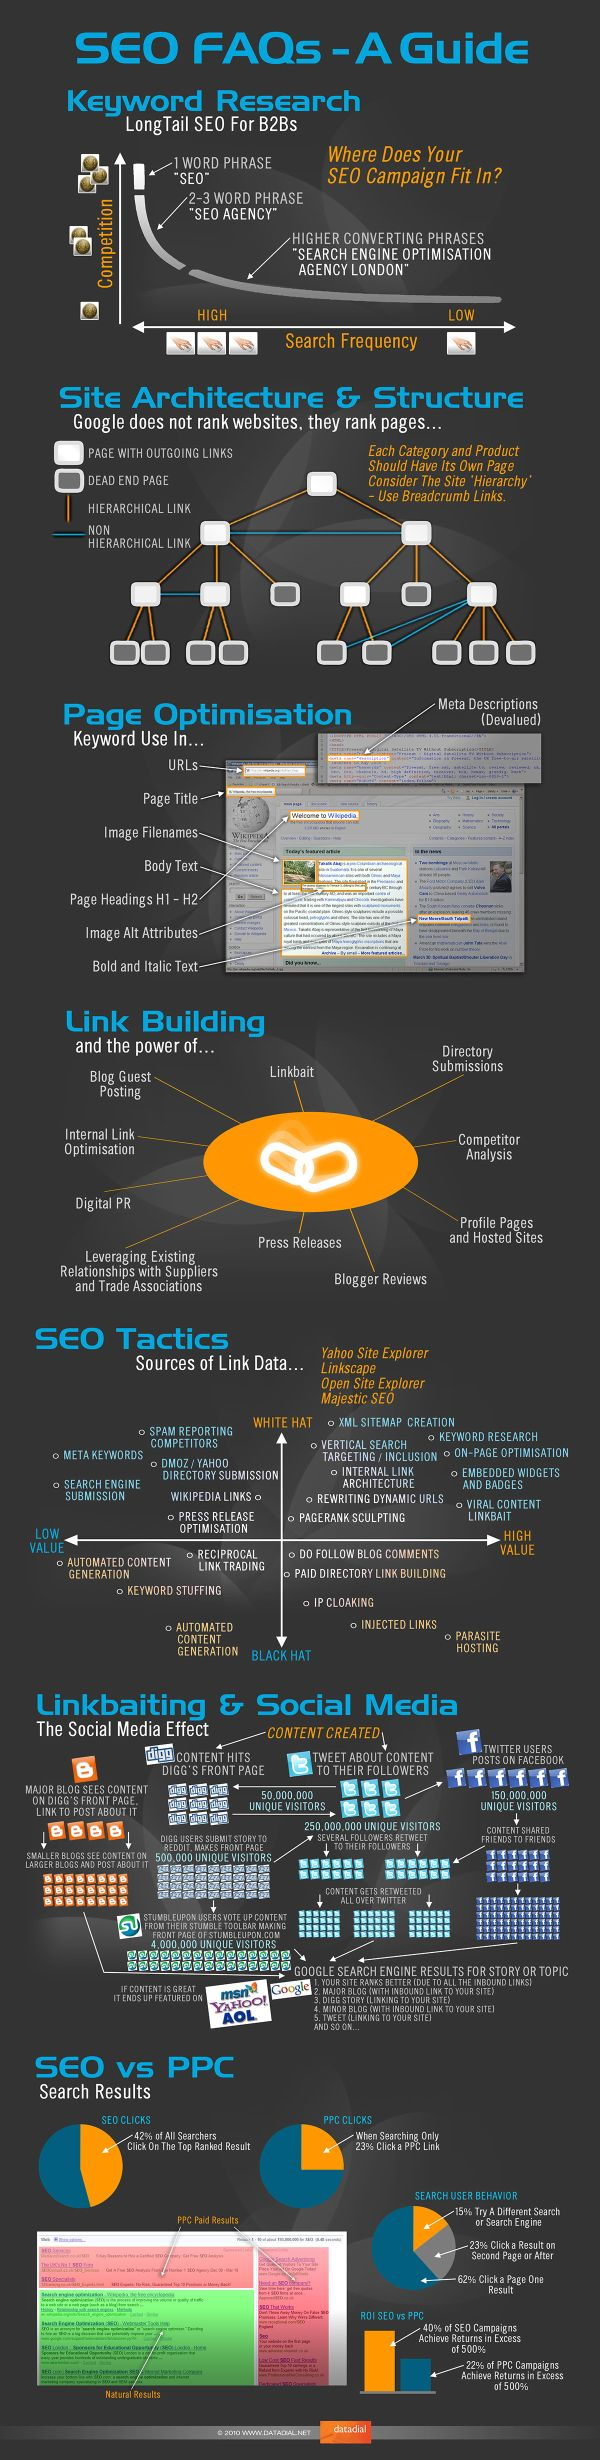 Learn the No cost DIY SEO Techniques which will make your website rank in Google and Bing.